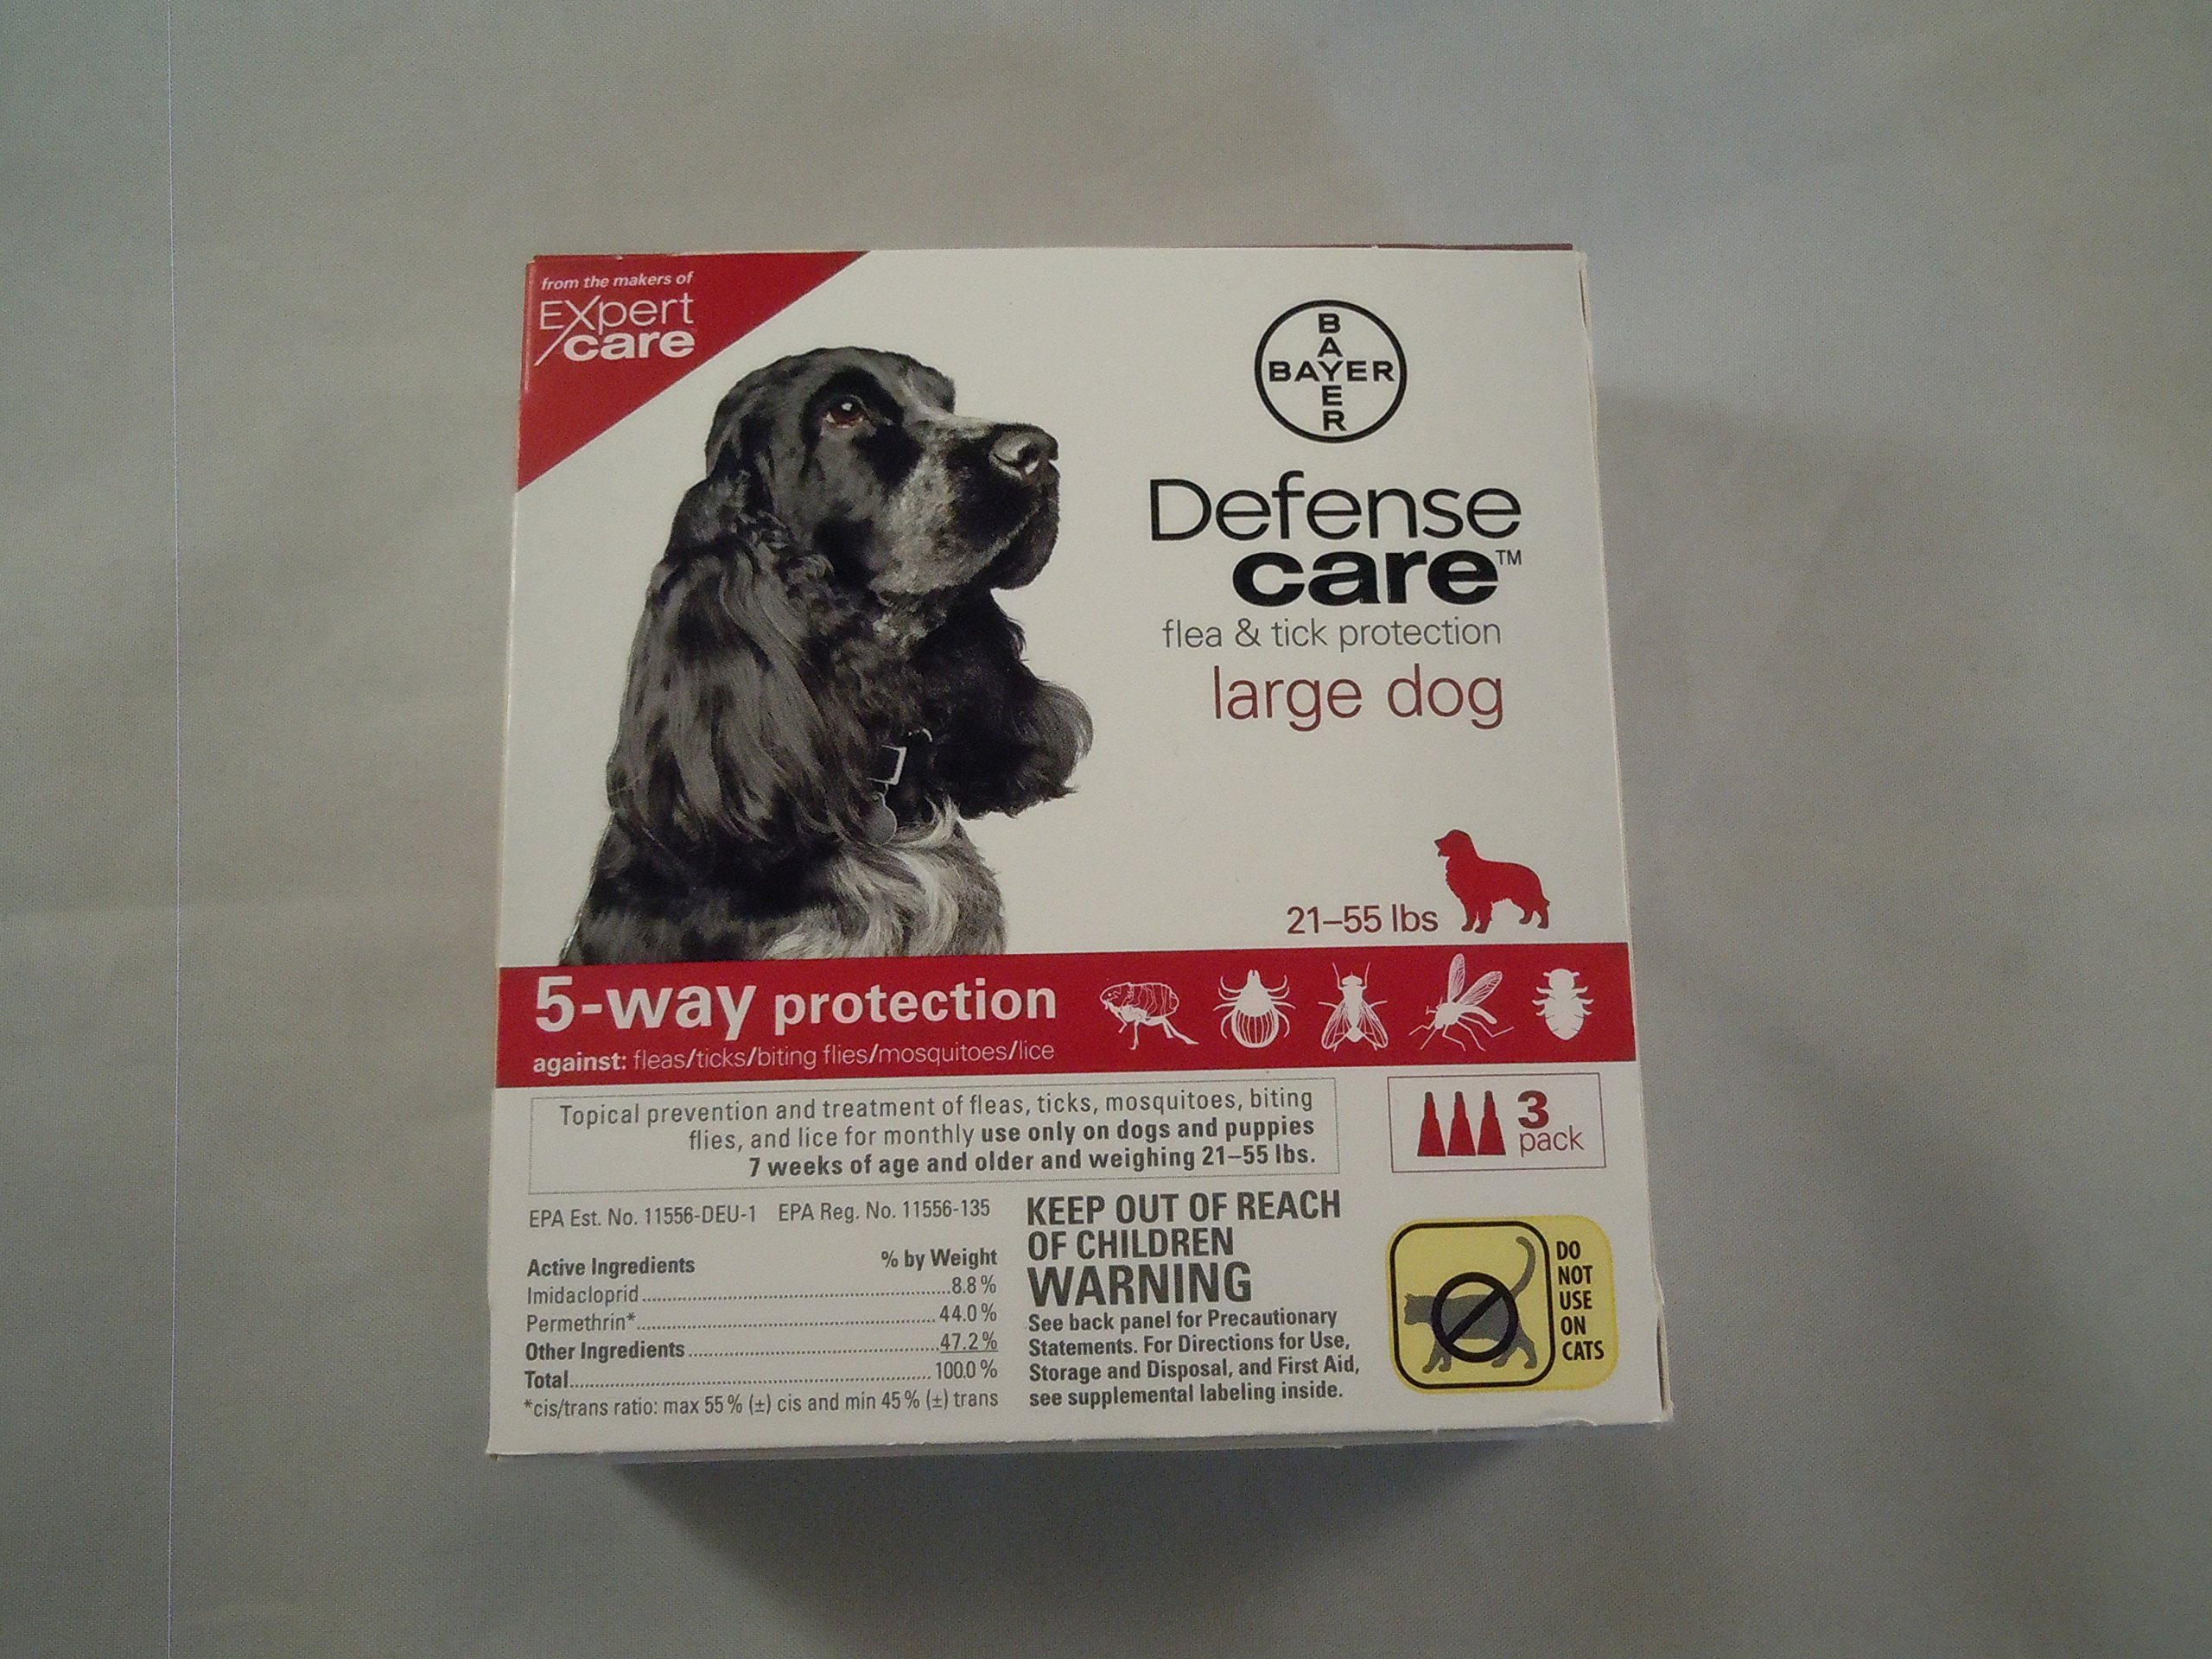 Flea & Tick Protection for Large Dog by Defense Care